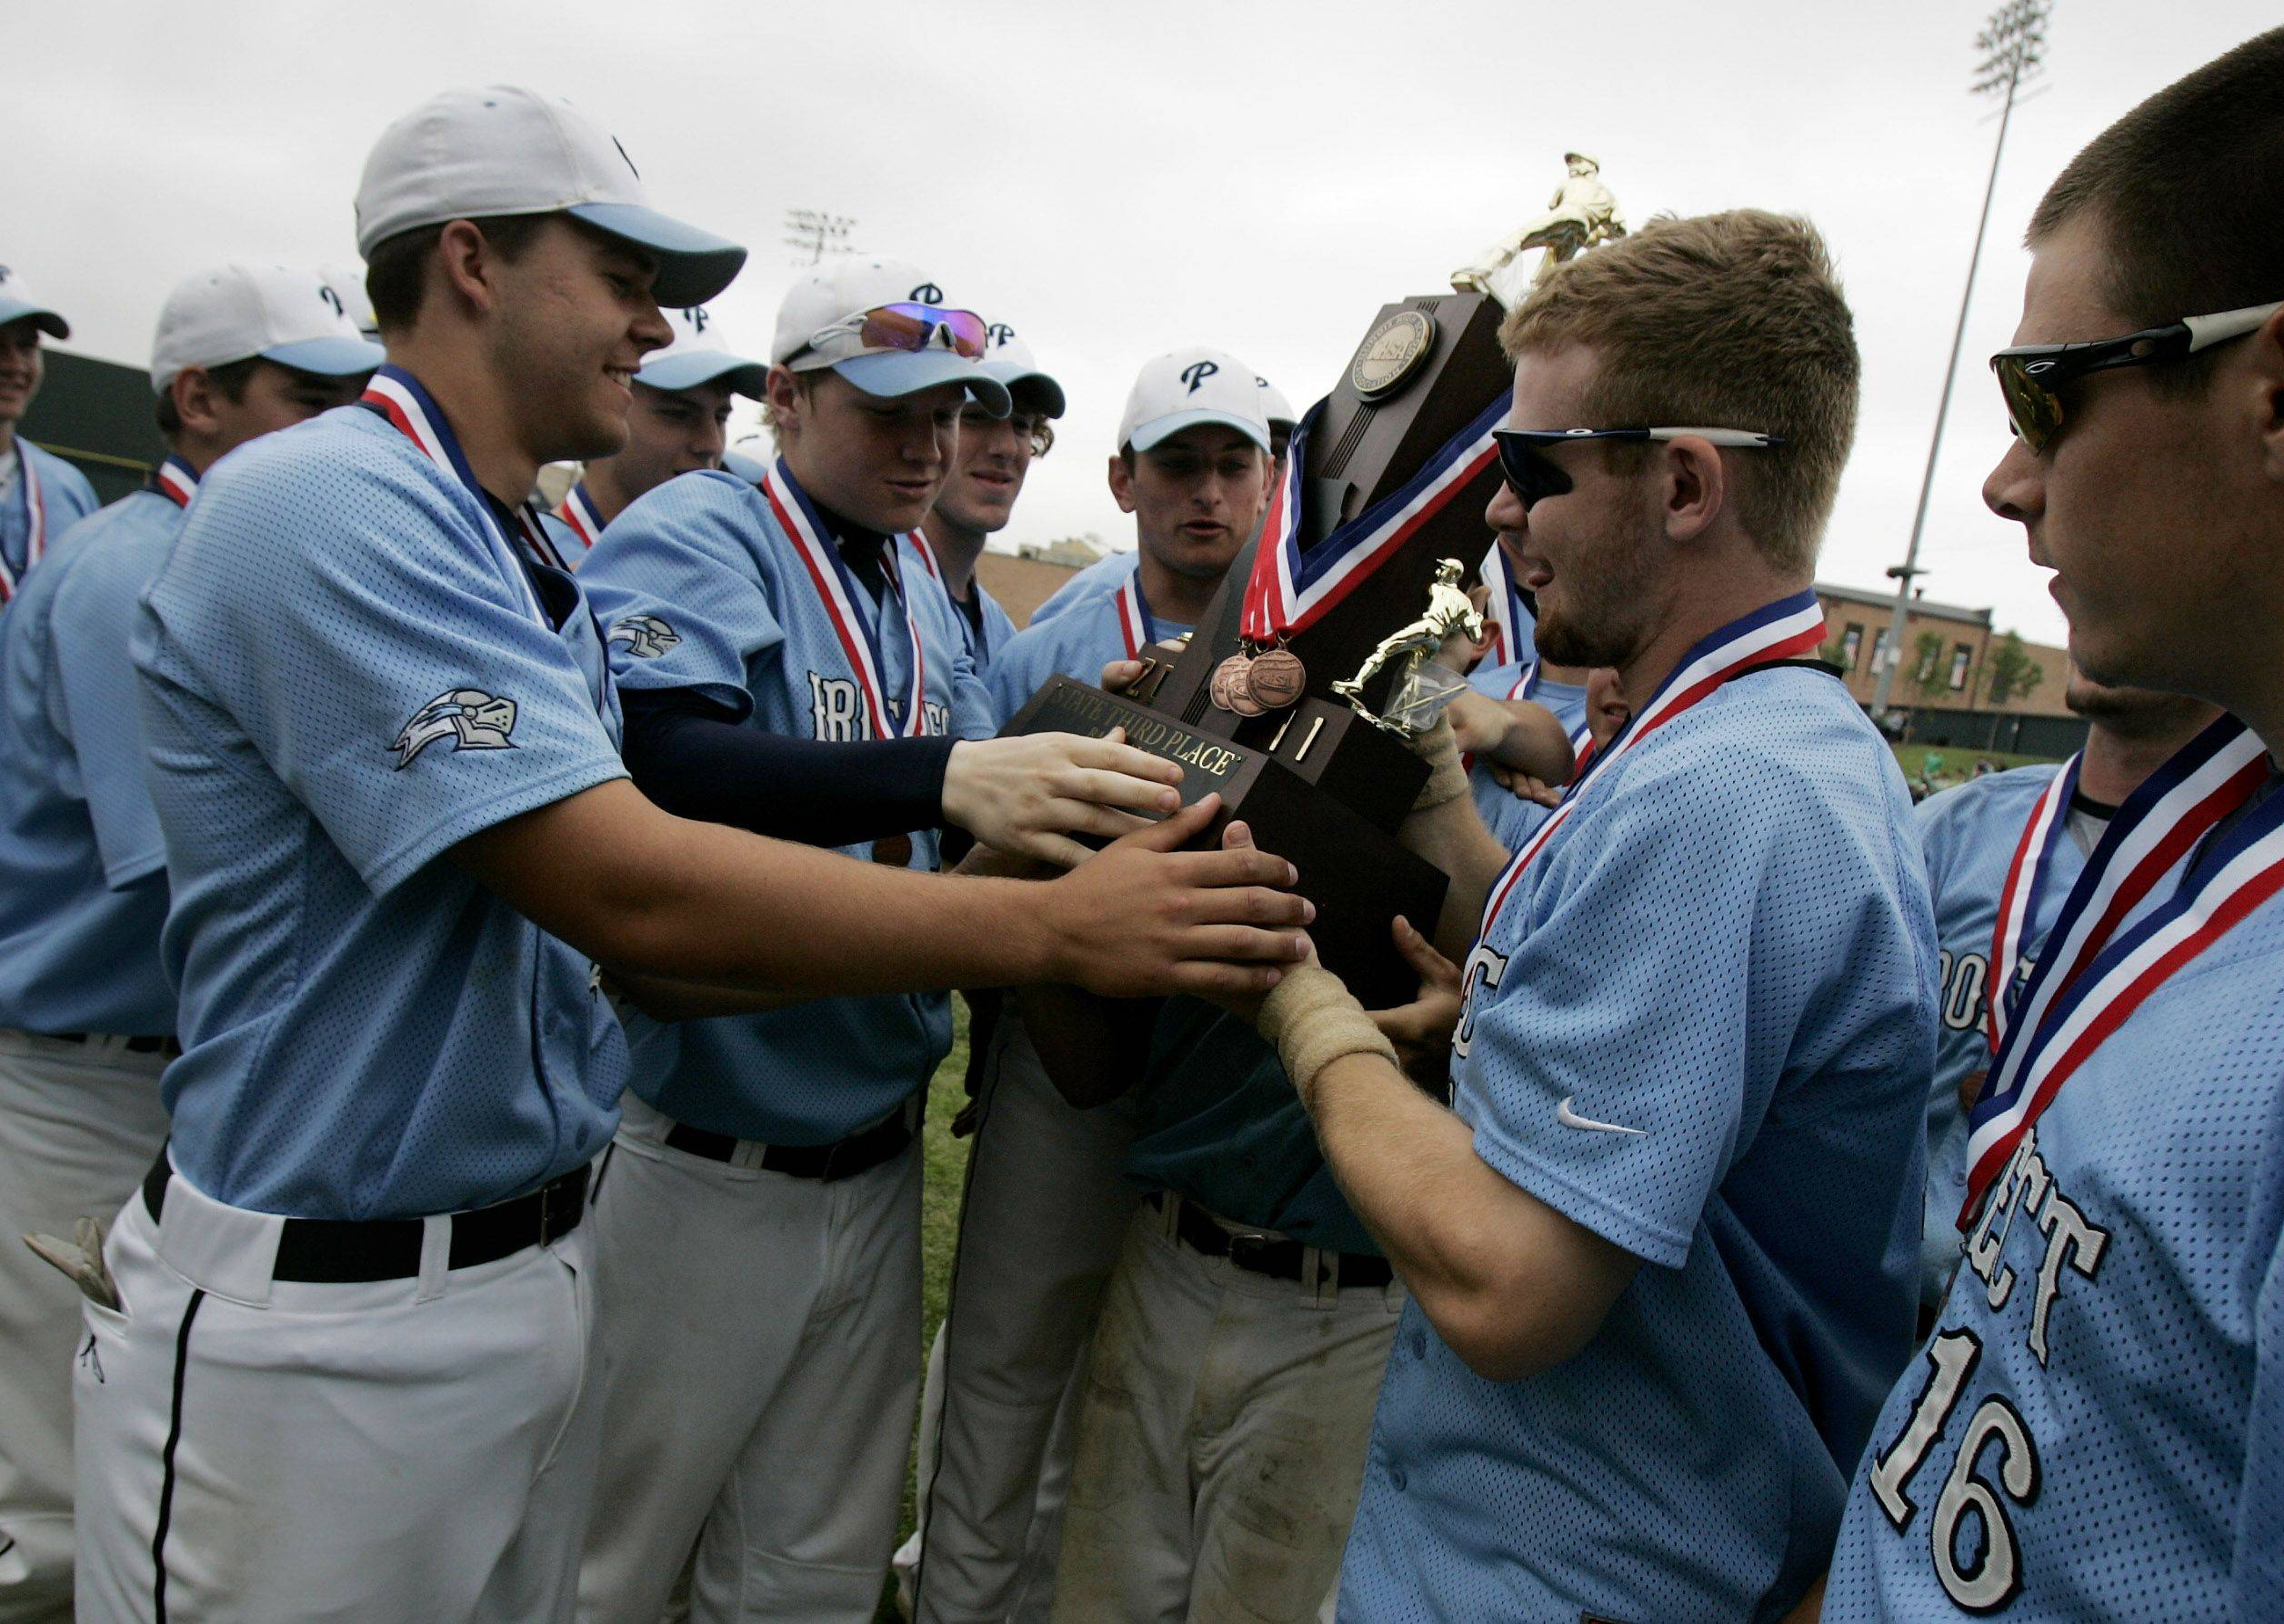 Prospect players touch the third place trophy after defeating Mt. Carmel during the boys high school baseball game Saturday in the Class 4A 3rd place game at Silver Cross Field in Joliet. Prospect defeated Mt. Carmel 2-1 to win third place in the state.